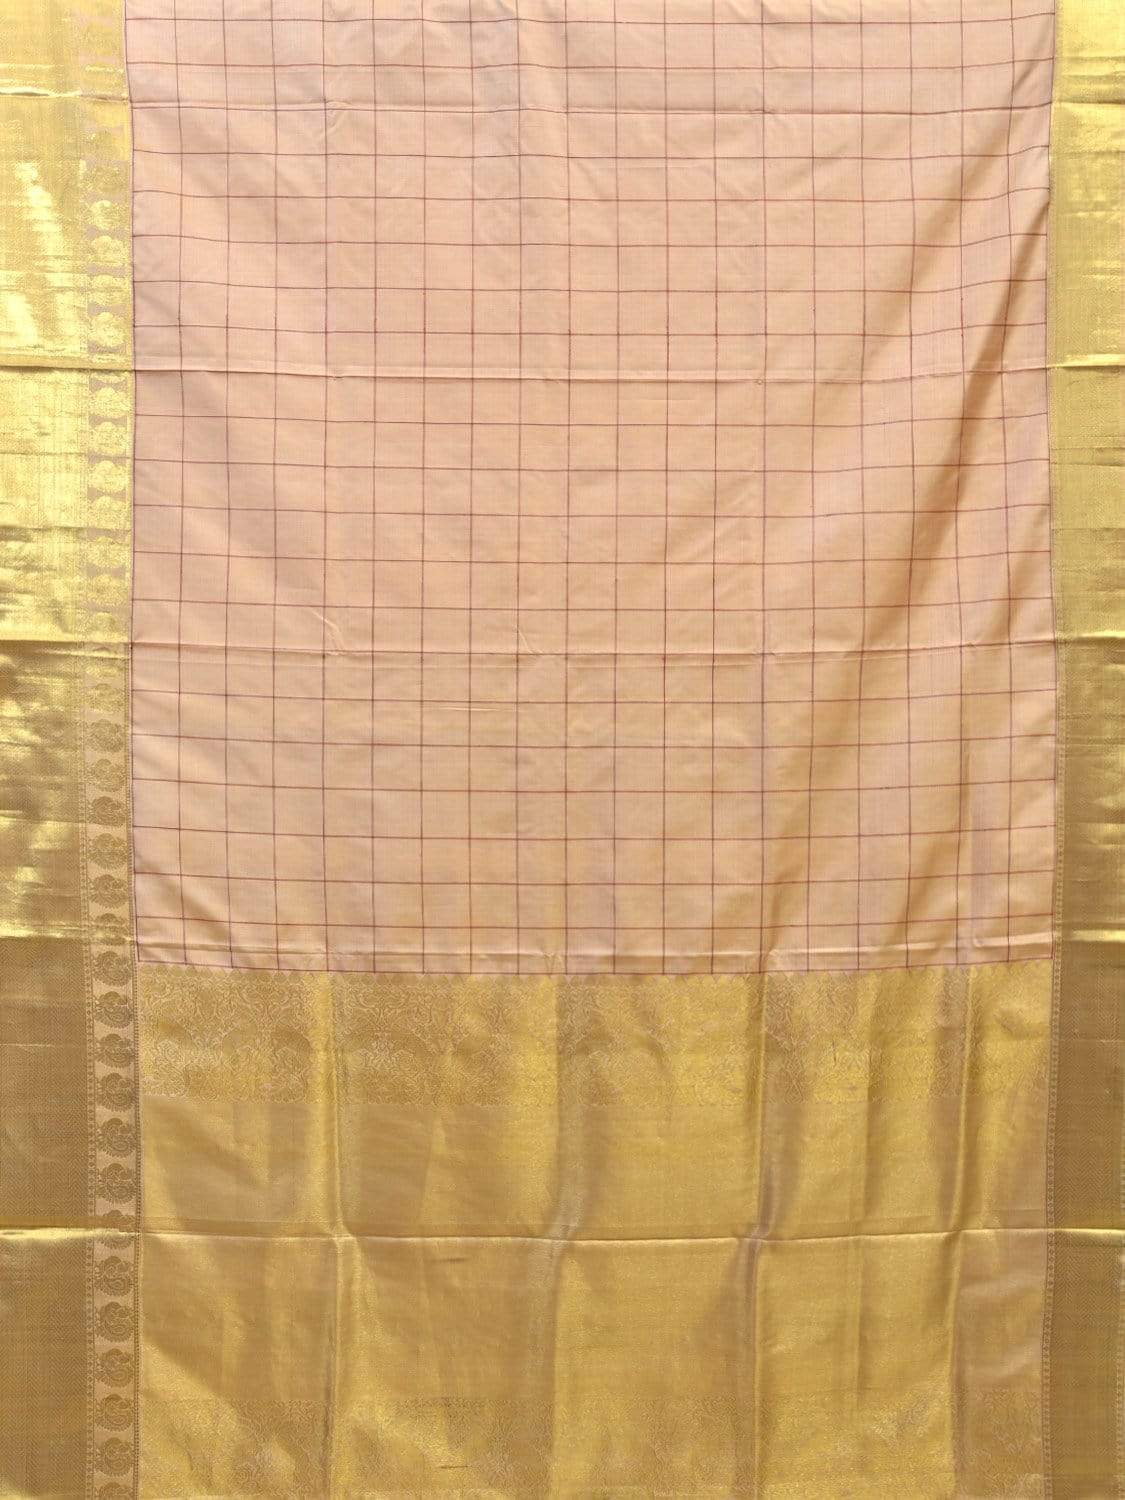 Cream Kanchipuram Silk Handloom Saree with Checks and Birder Design No Blouse k0499